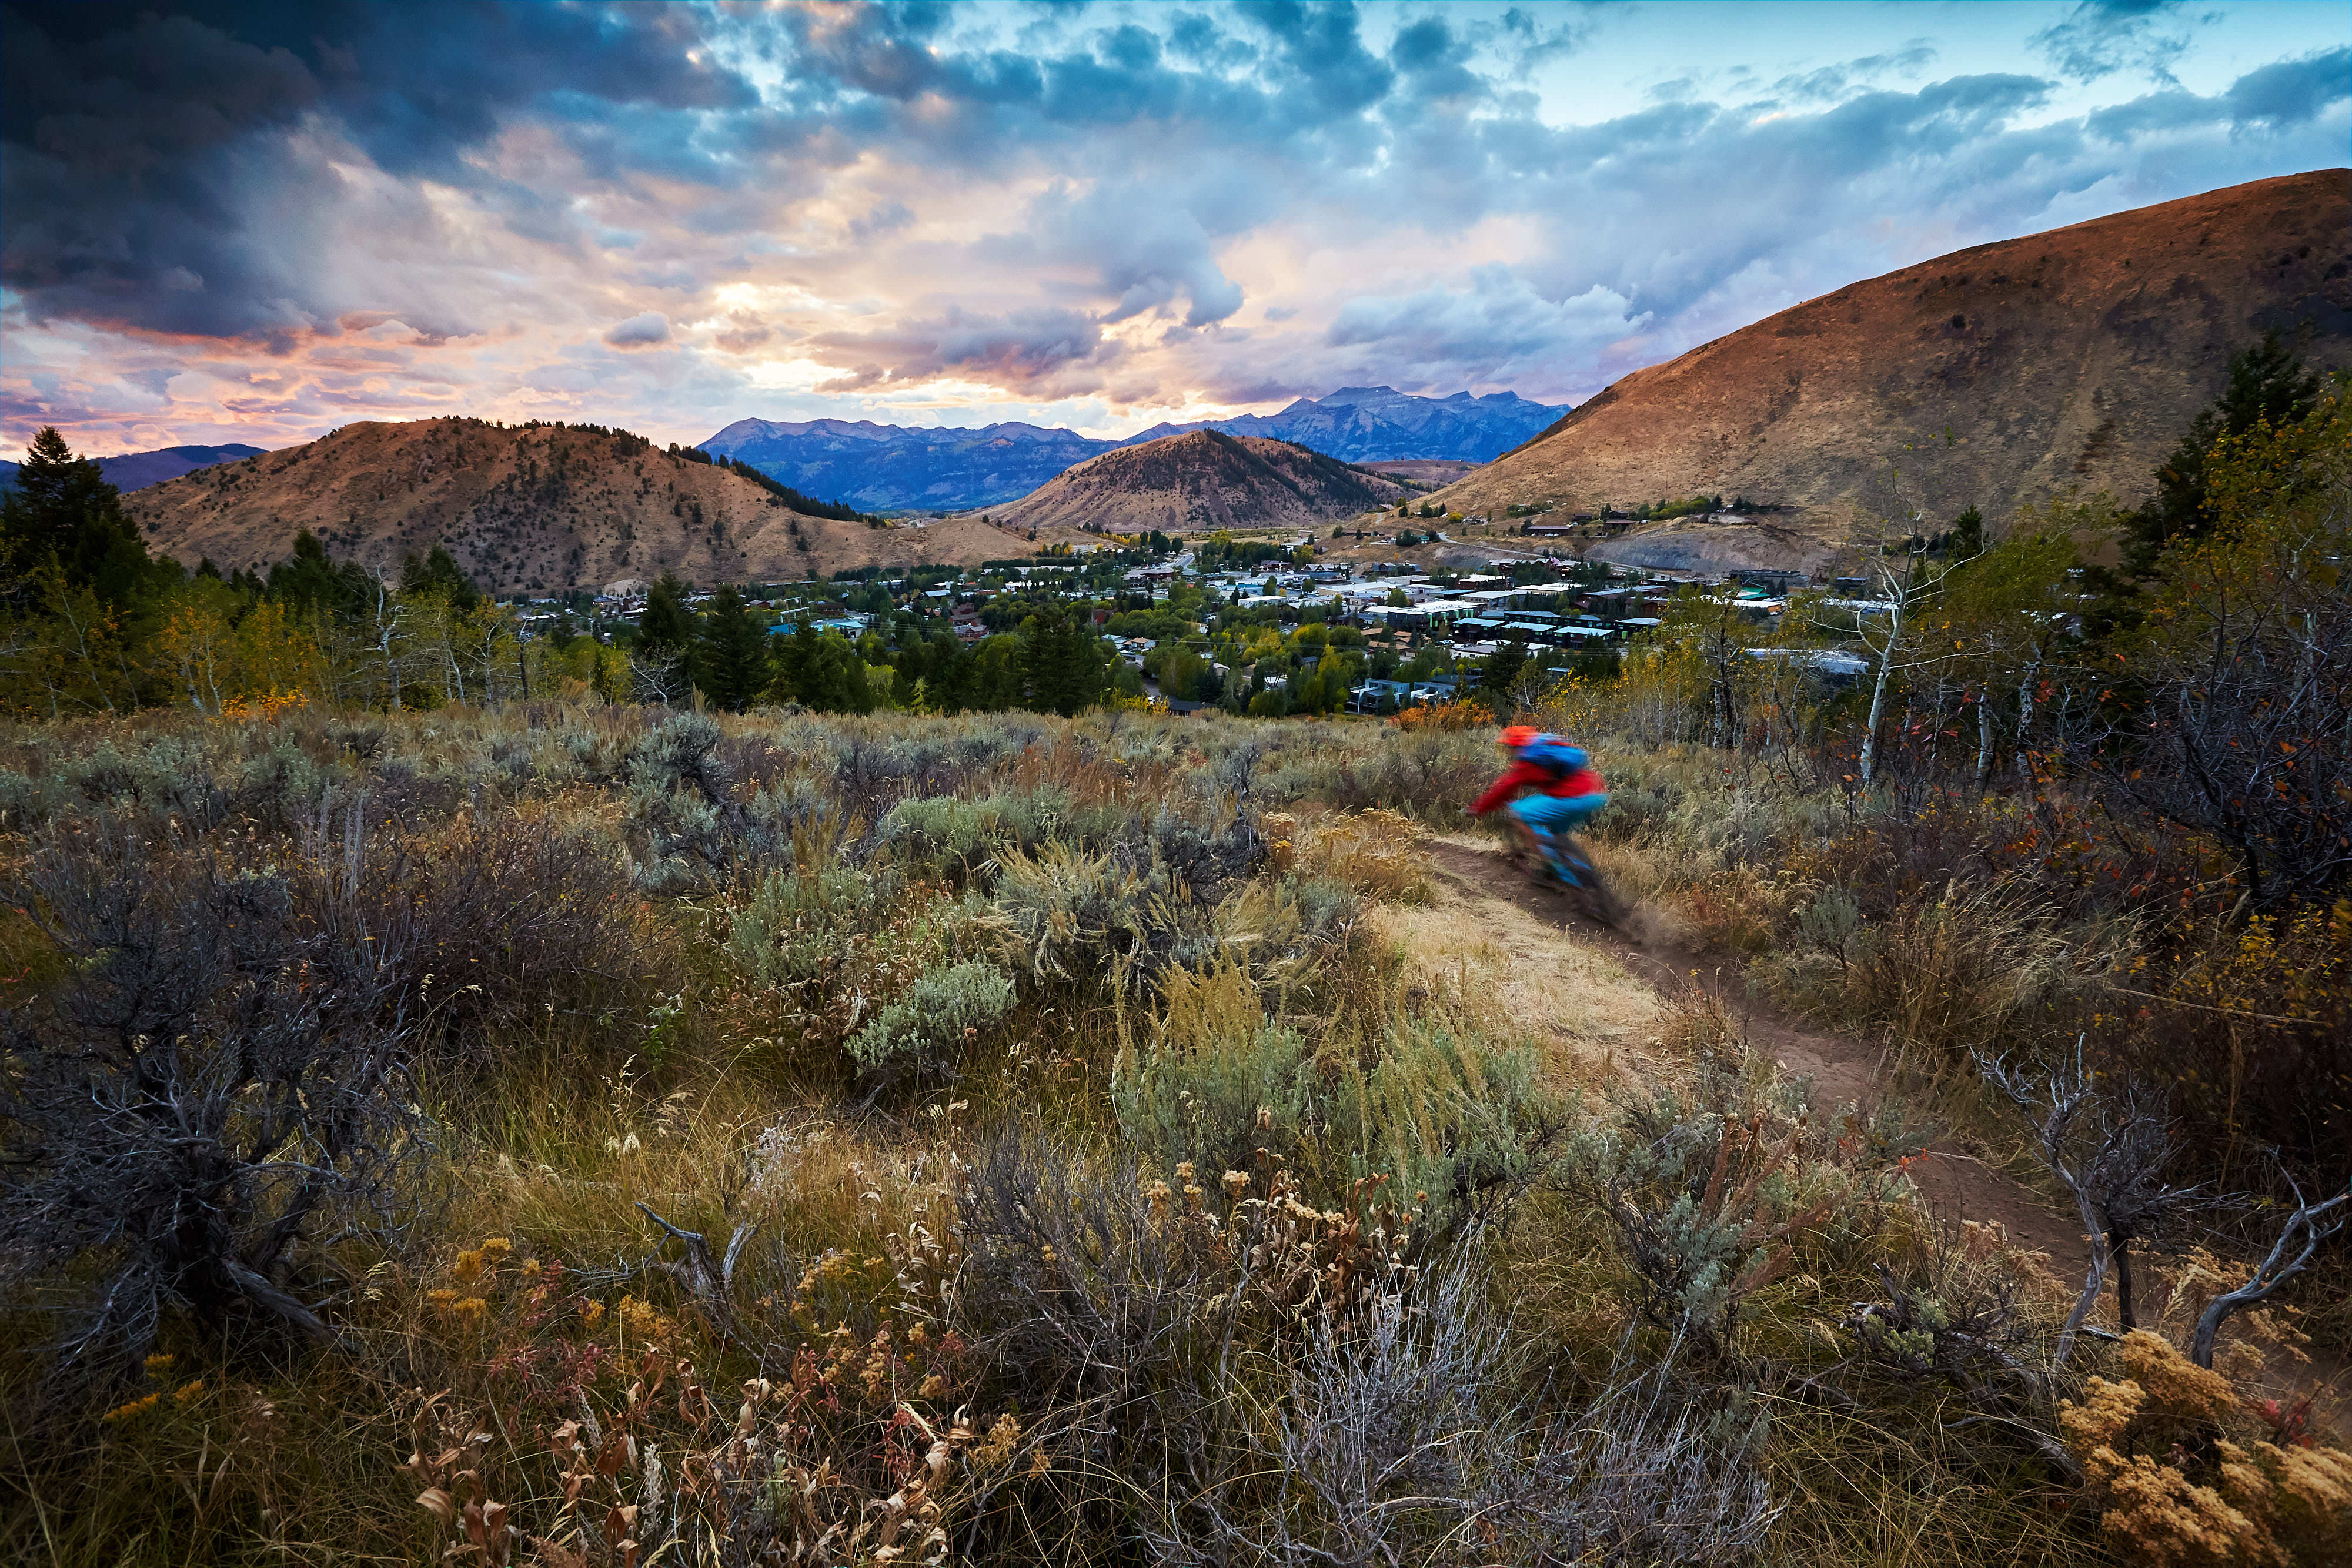 Mountain Biking Jackson Hole Sunset by Jackson Hole Professional Outdoor Sports Photographer Jay Goodrich